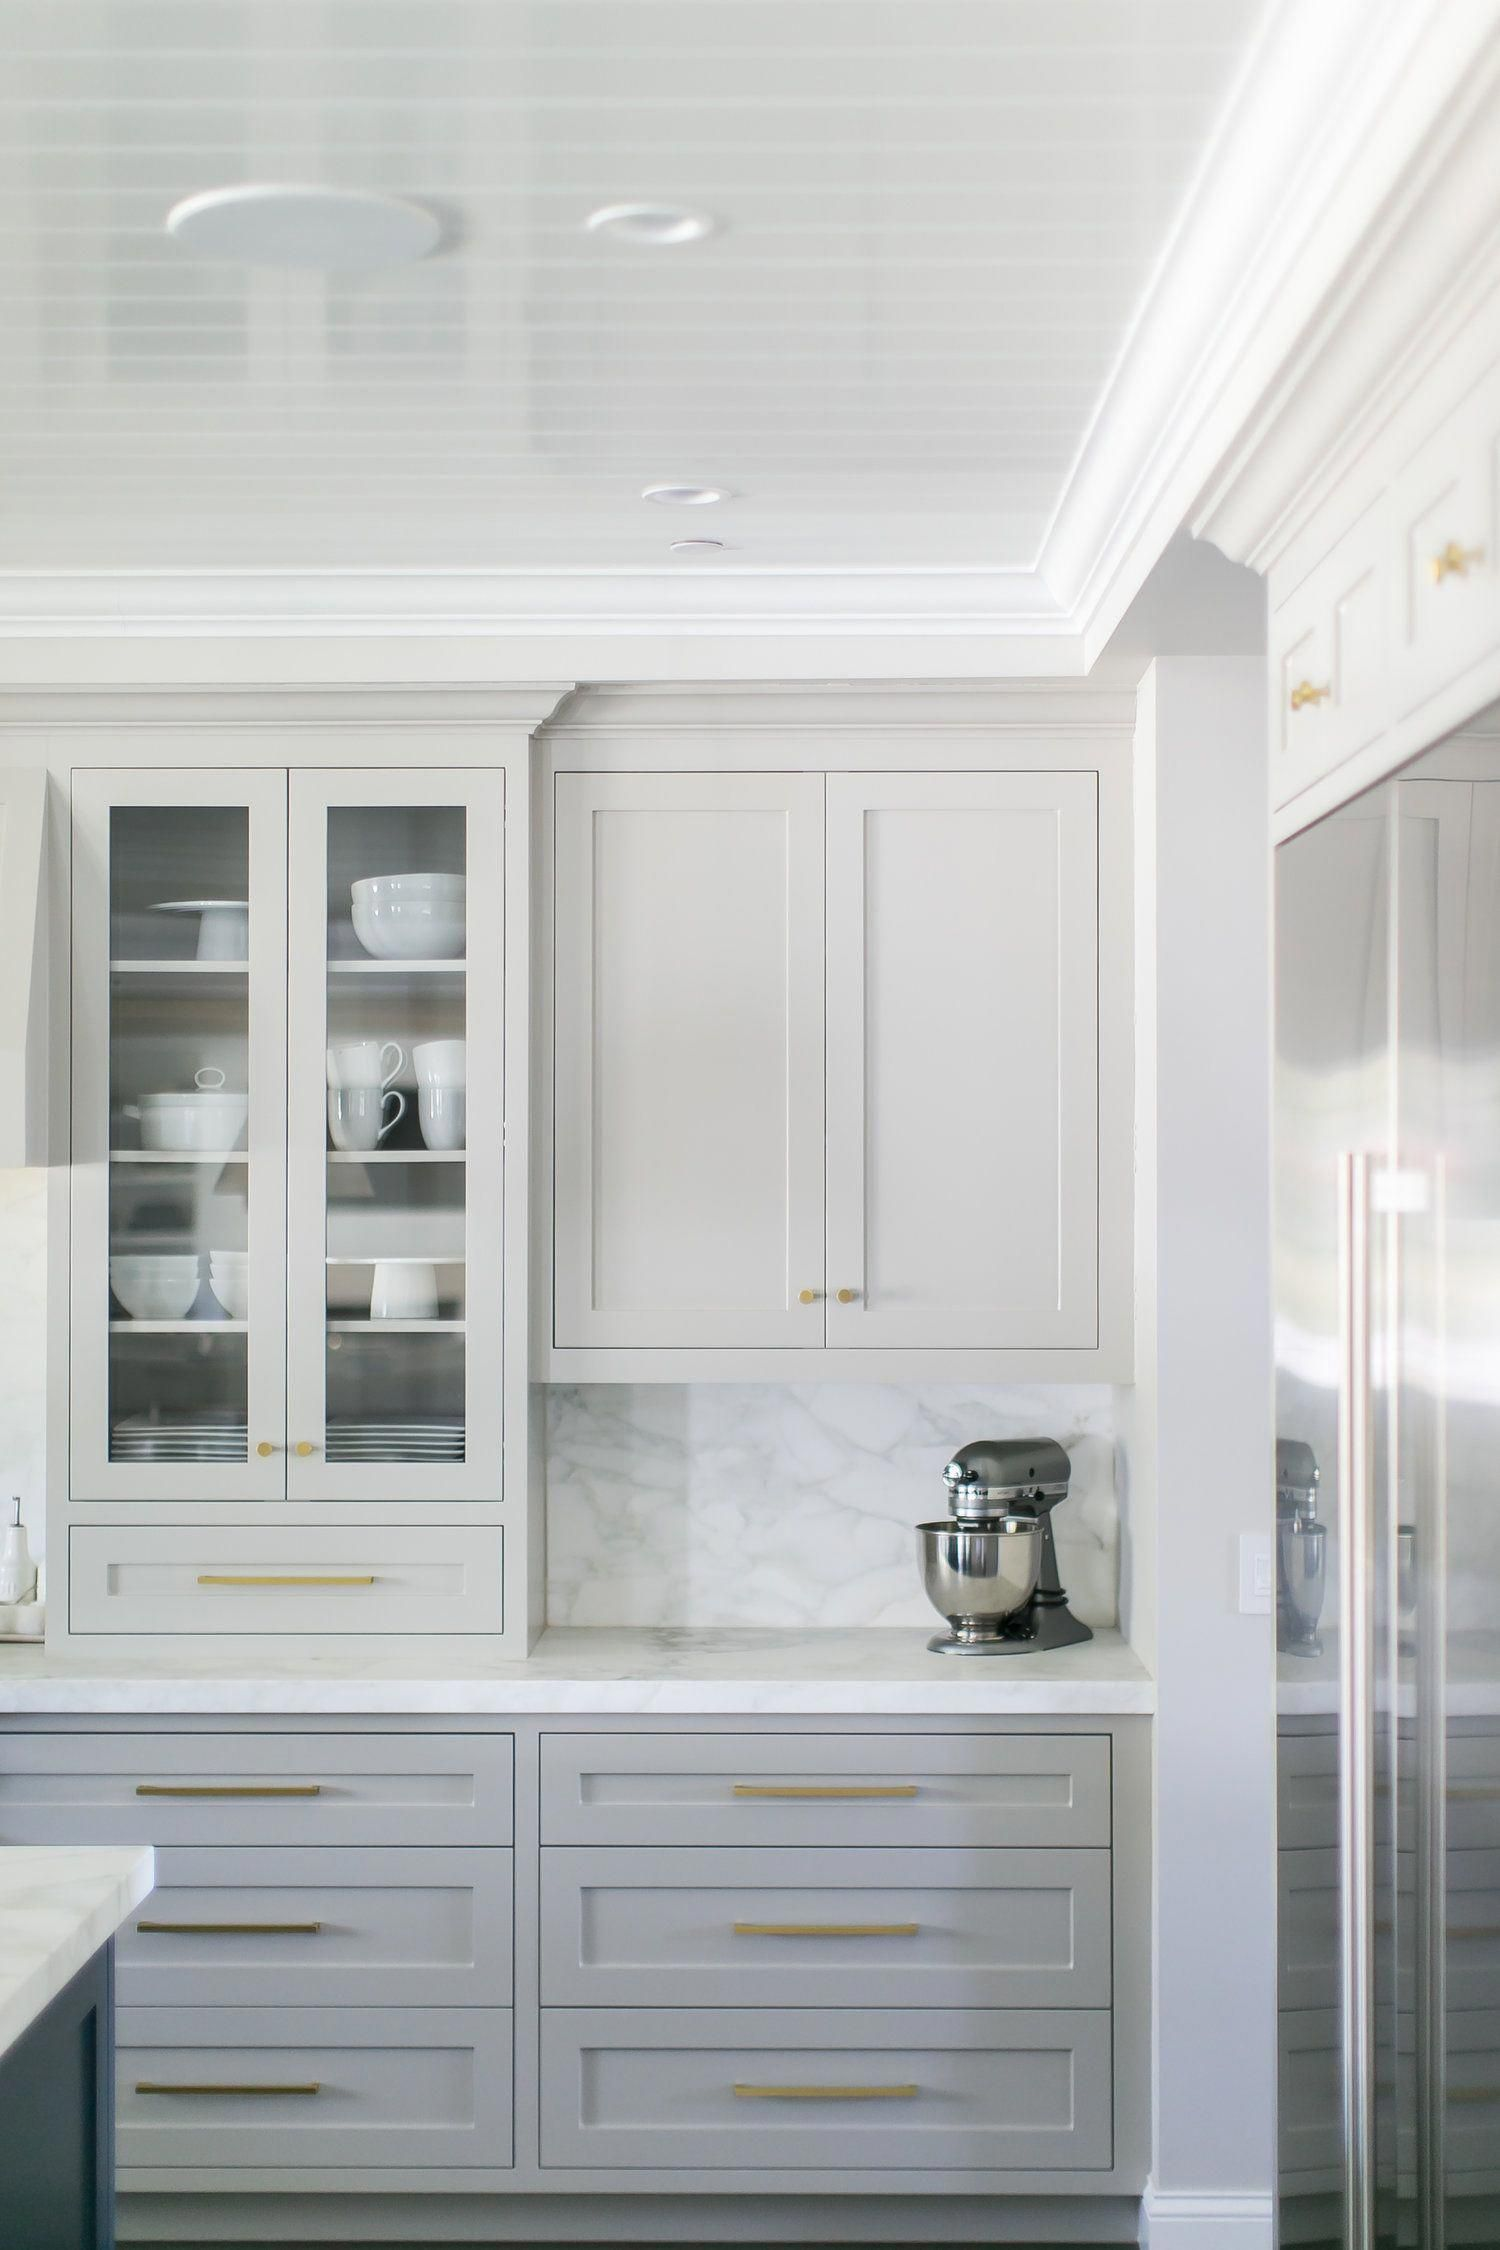 Cabinets That Go Up To Ceiling Shaker Style Doors White And Grey Marble Backsplash Kitchendoor Kitchen Remodeling Projects Kitchen Design Kitchen Renovation